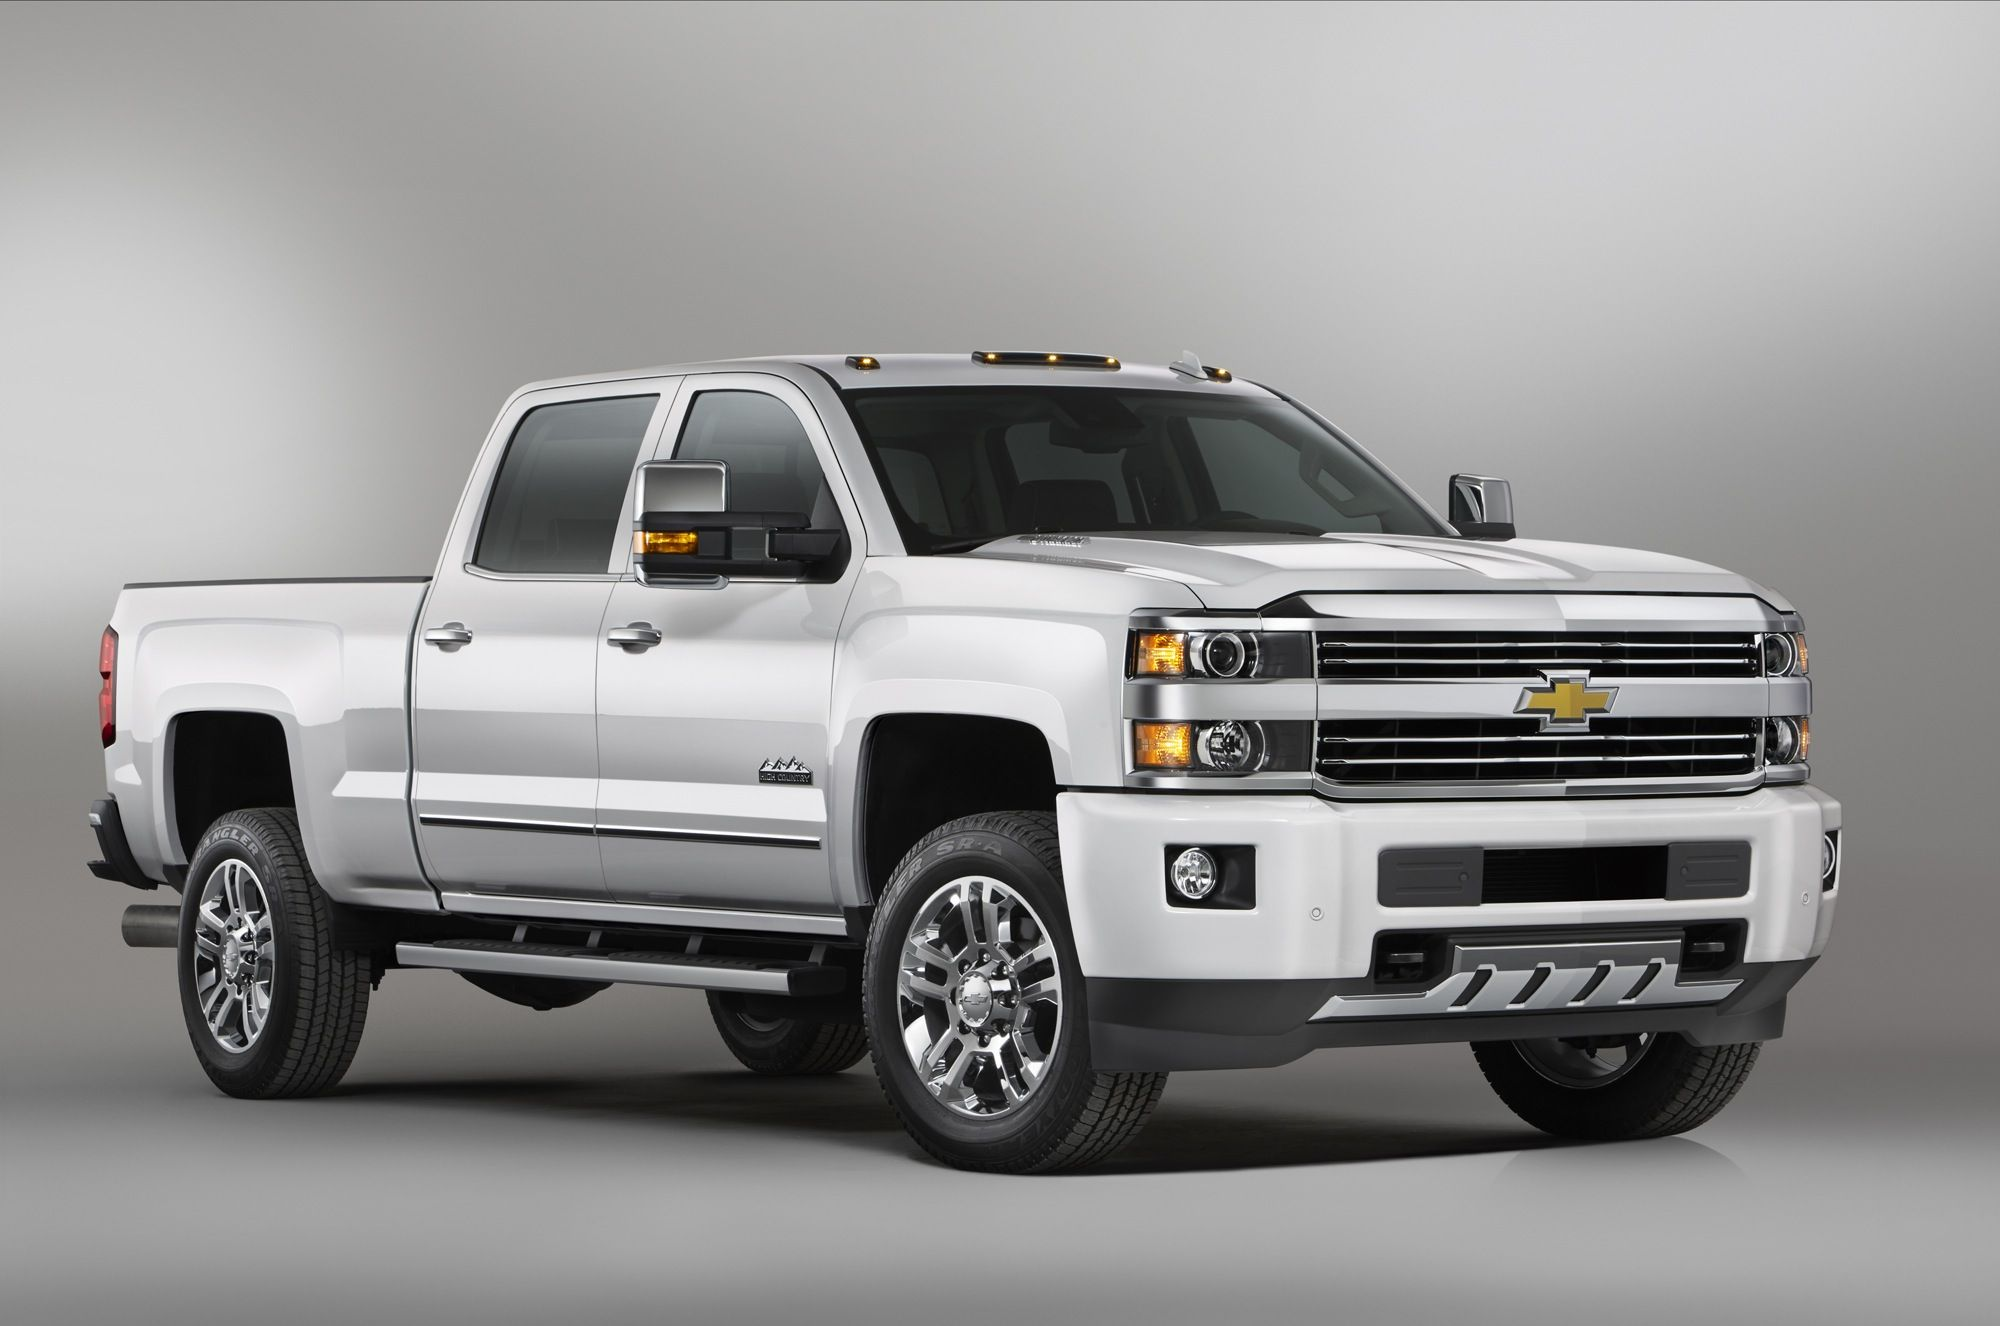 The 2015 chevrolet silverado high country hd the brand s first high end heavy duty pickup truck will arrive at dealerships this summer